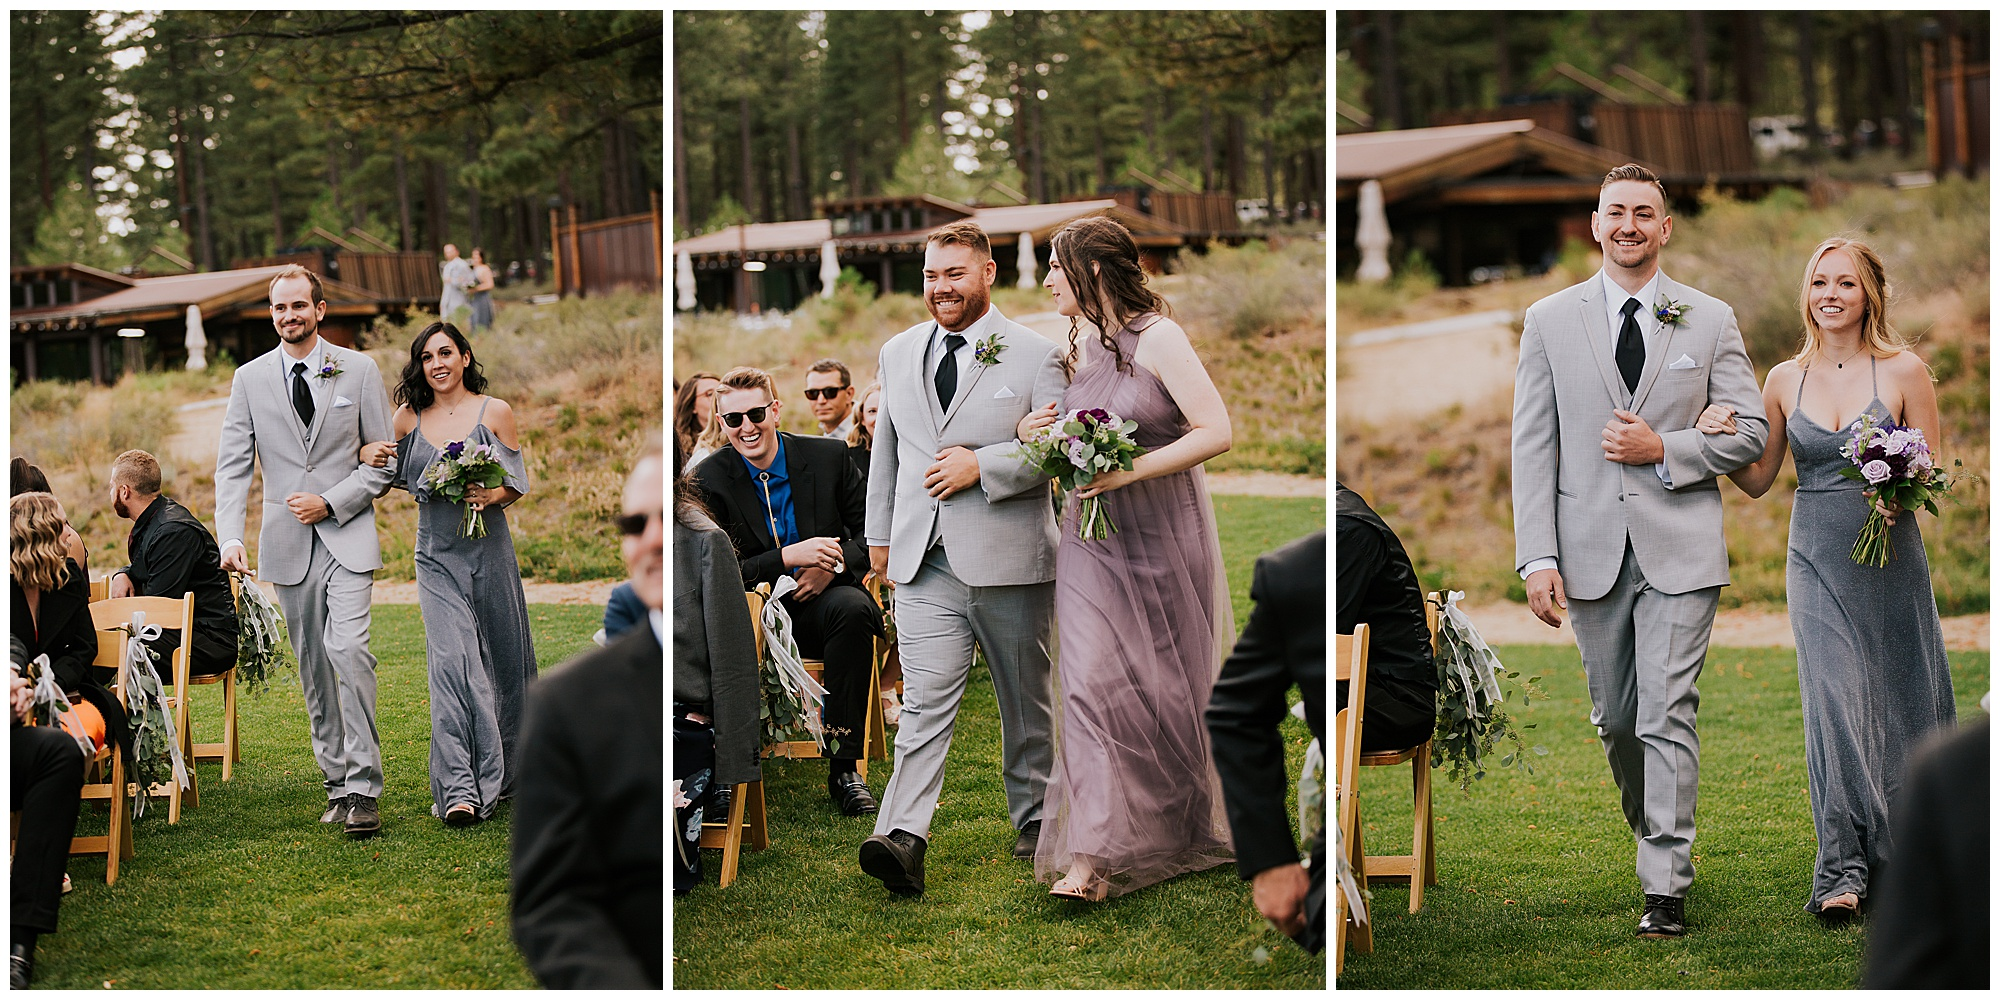 wedding attendants walk down aisle at Truckee California outdoor venue The Crossing